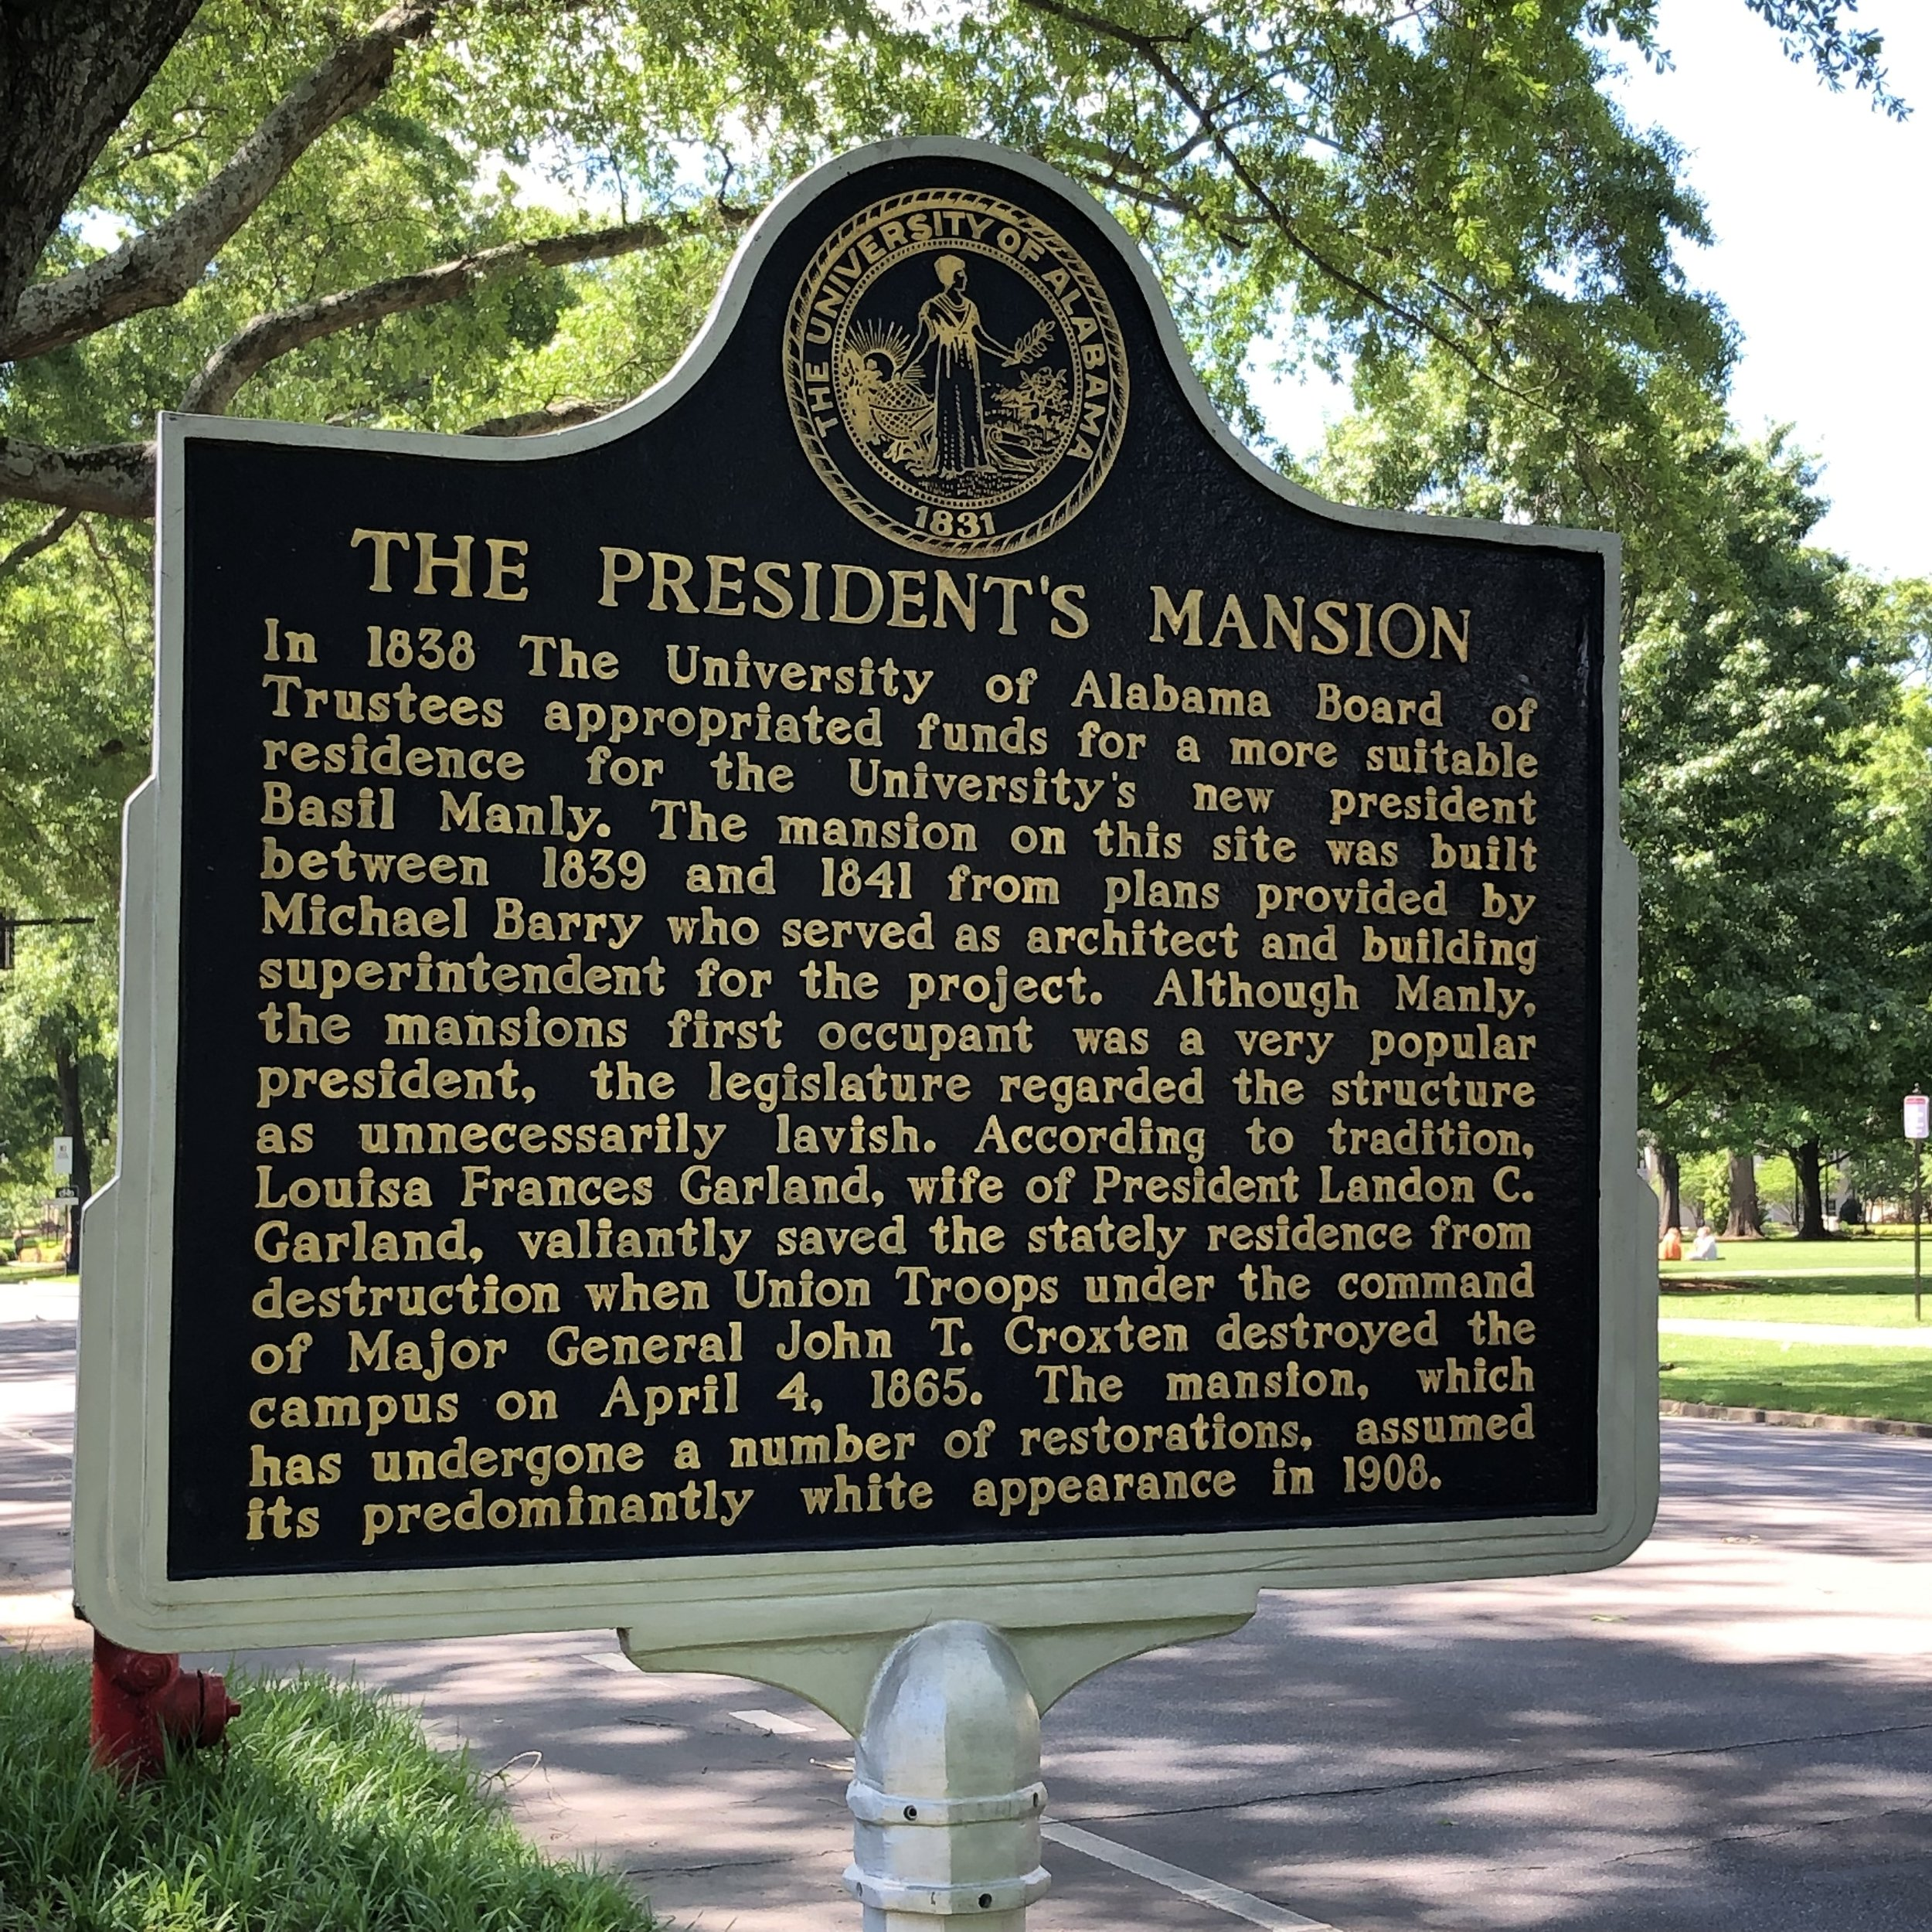 See photo at top for the President's Mansion … Photo by Caroline Pugh